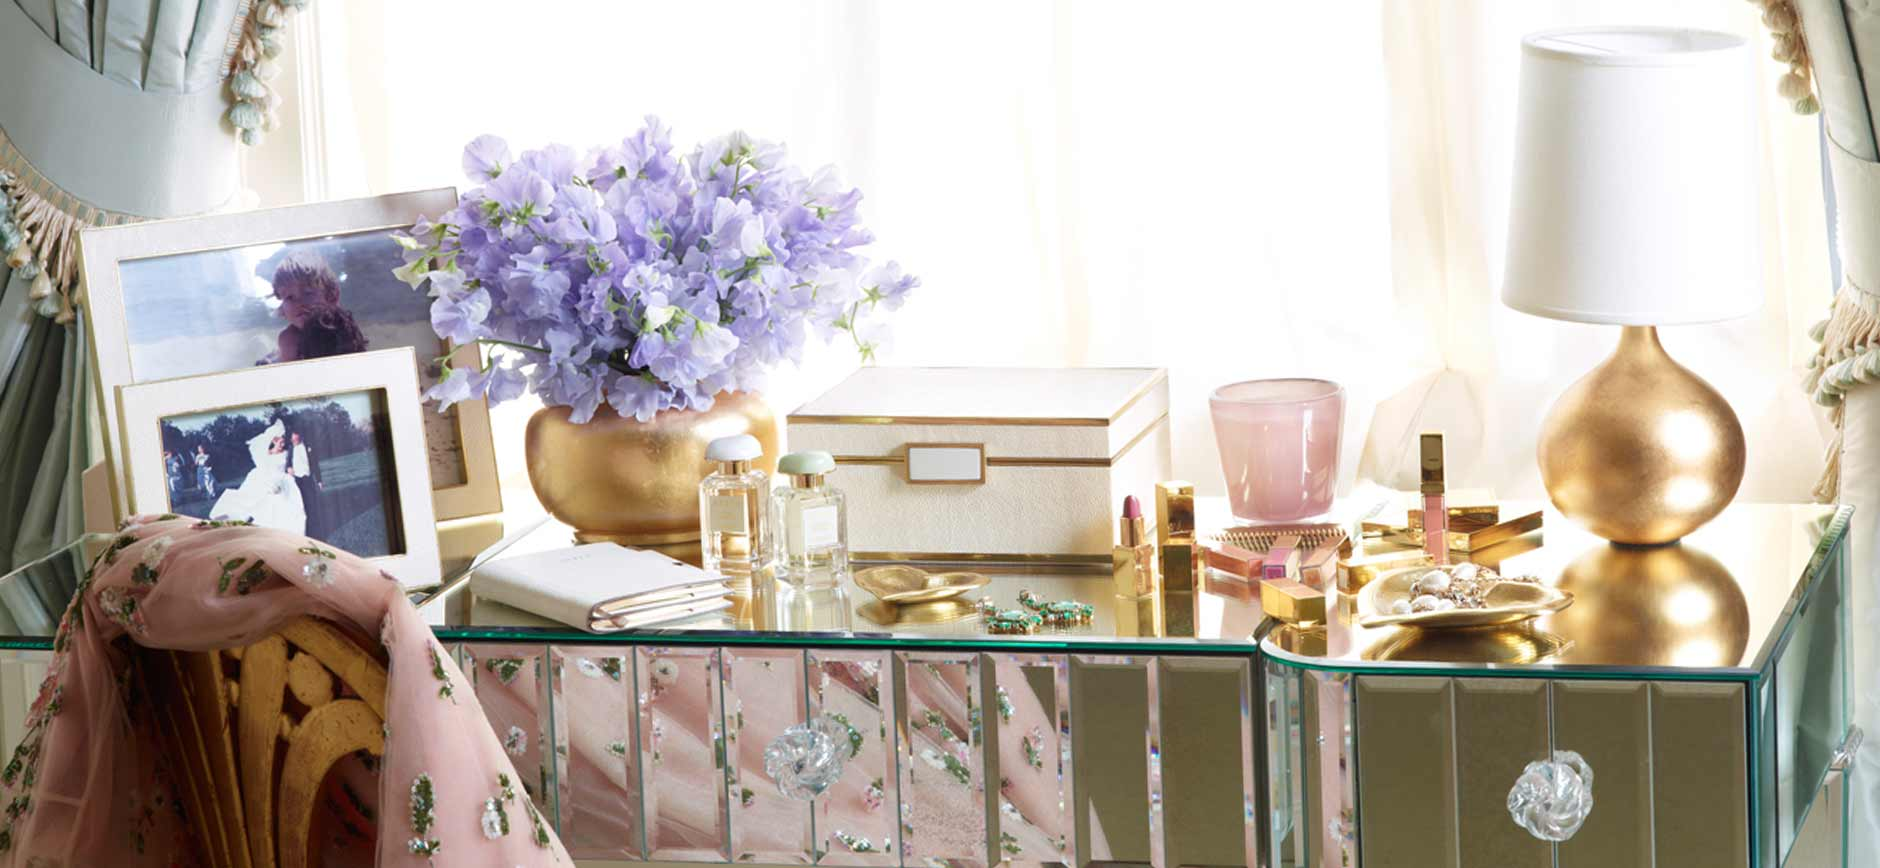 Bright vases trays dishes aroma lamps mirrors in beautiful frames - Aerin